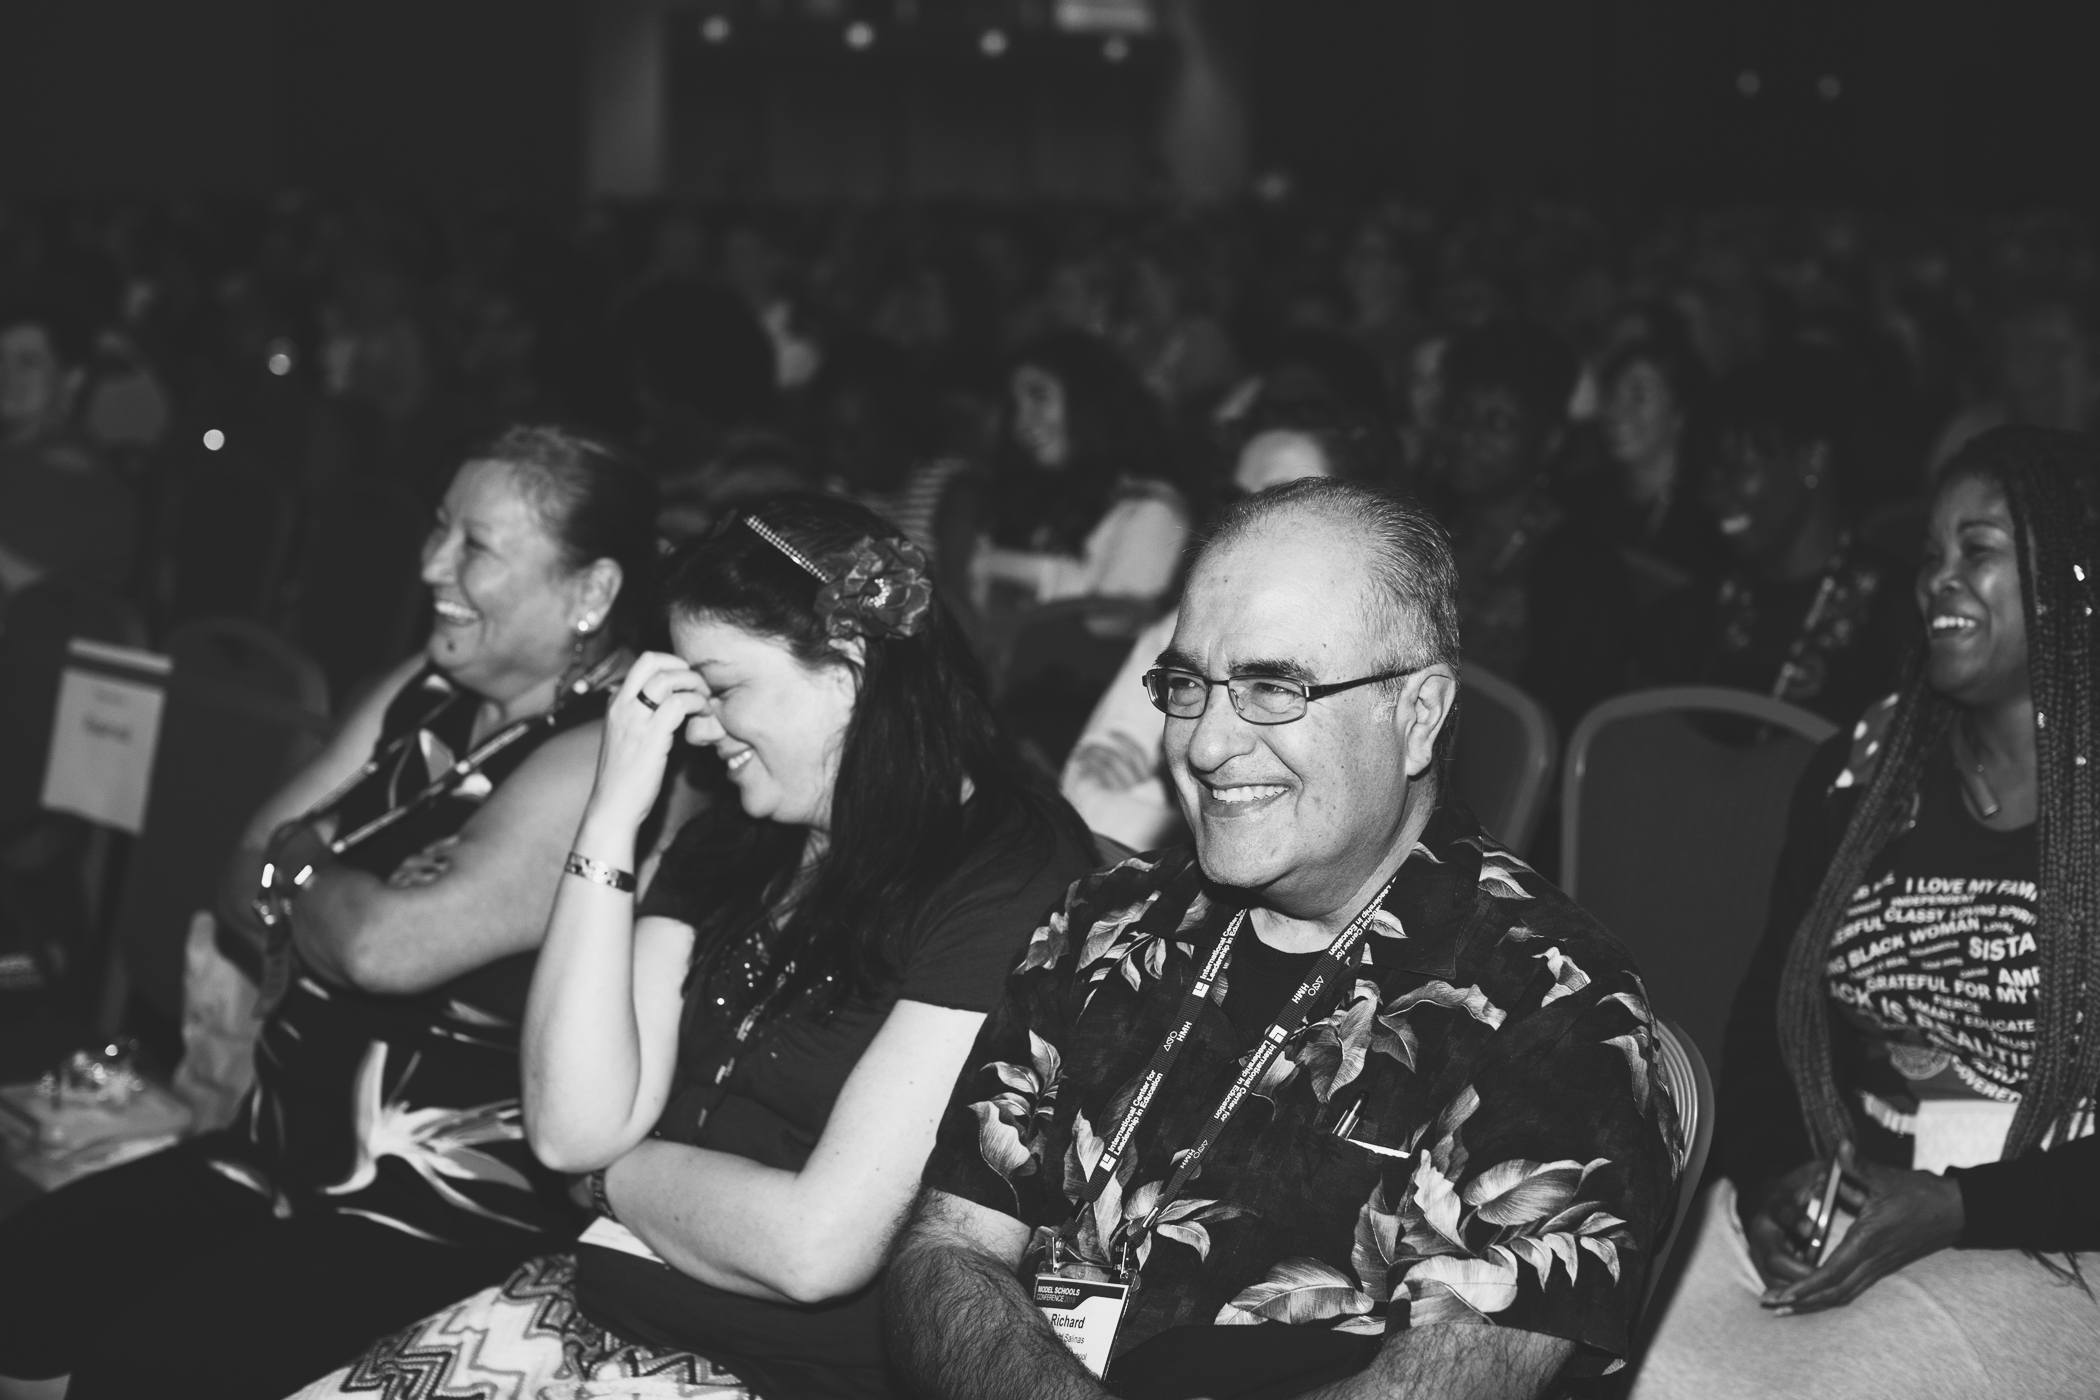 live event commercial photography brand storytelling for education florida conference photographer ©2018abigailbobophotography-29.jpg